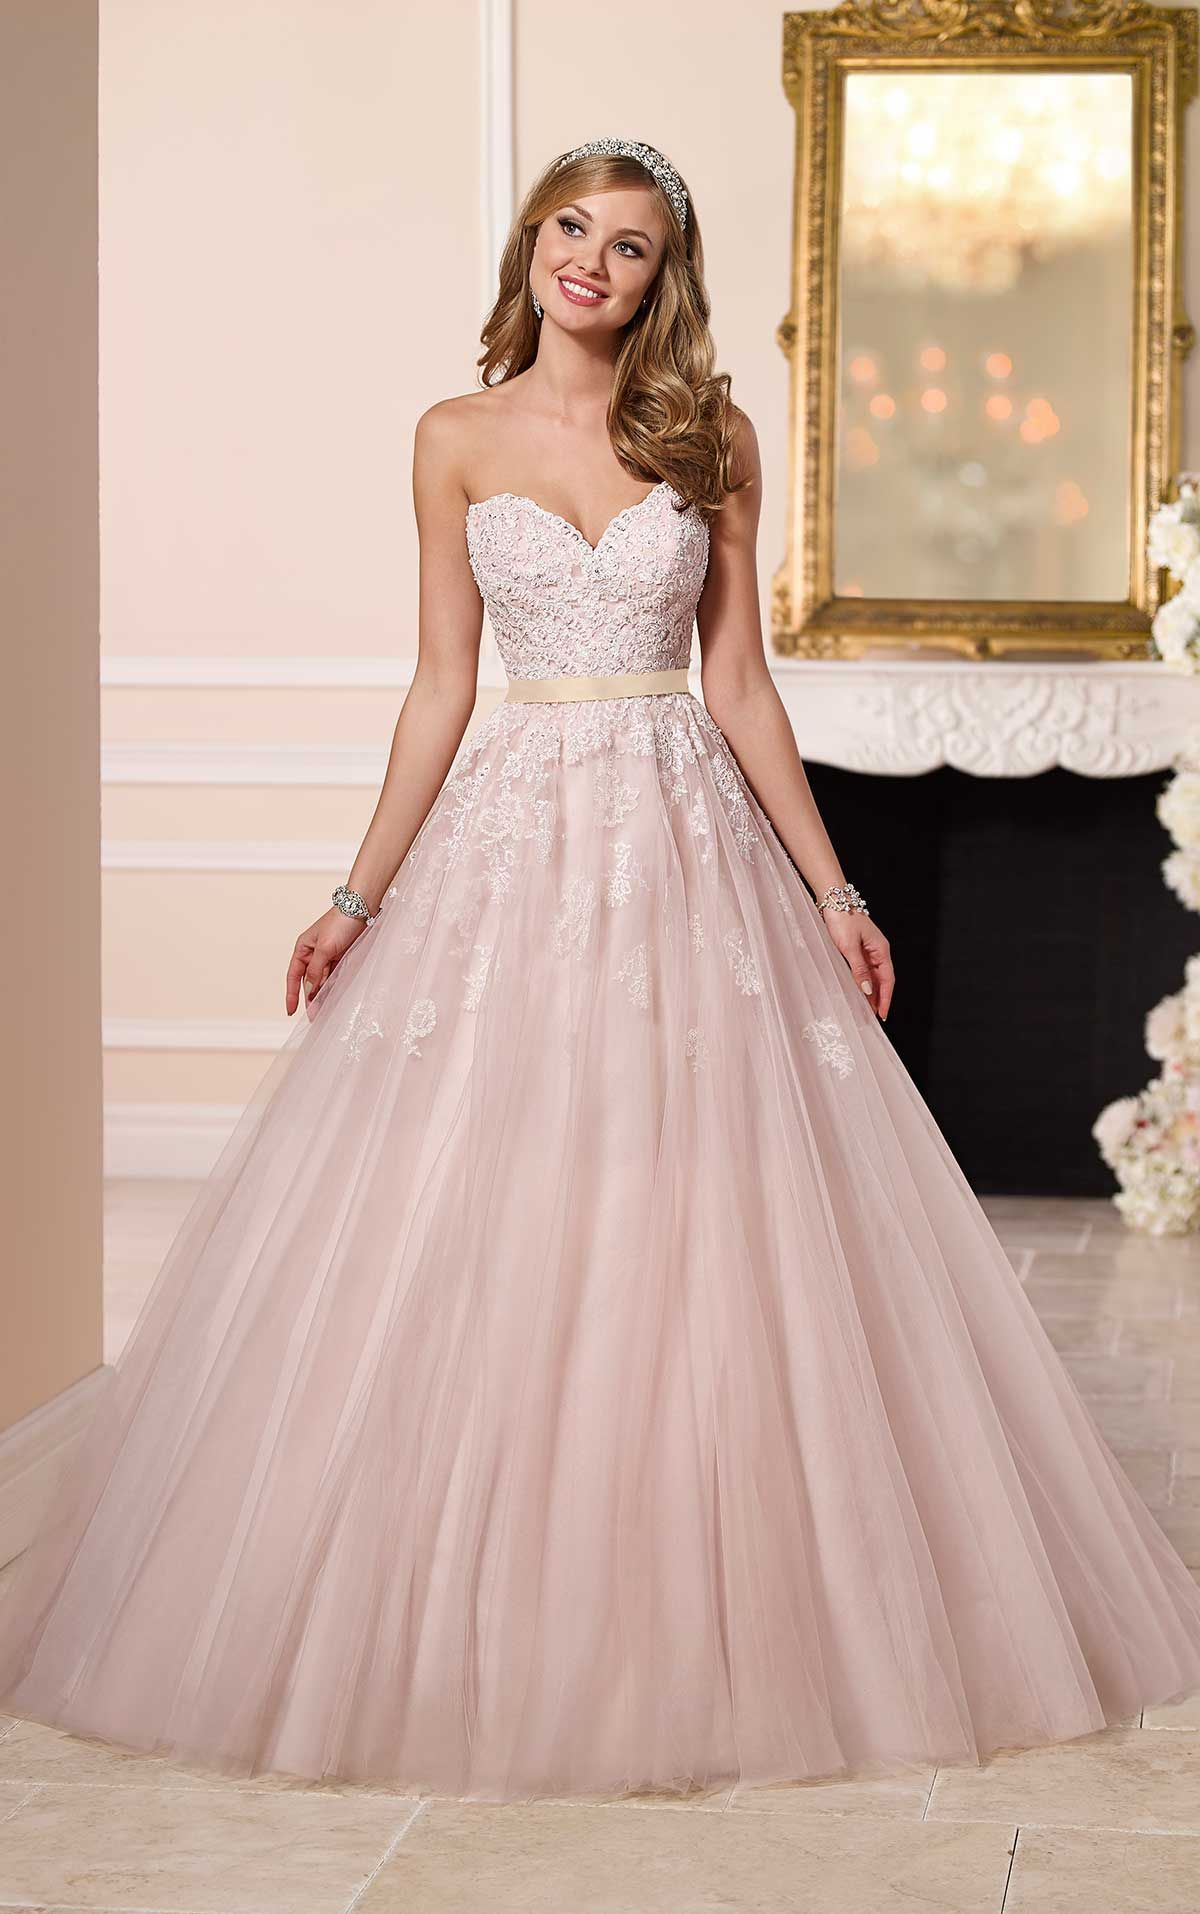 Tulle and lace princess wedding dress things to wear pinterest